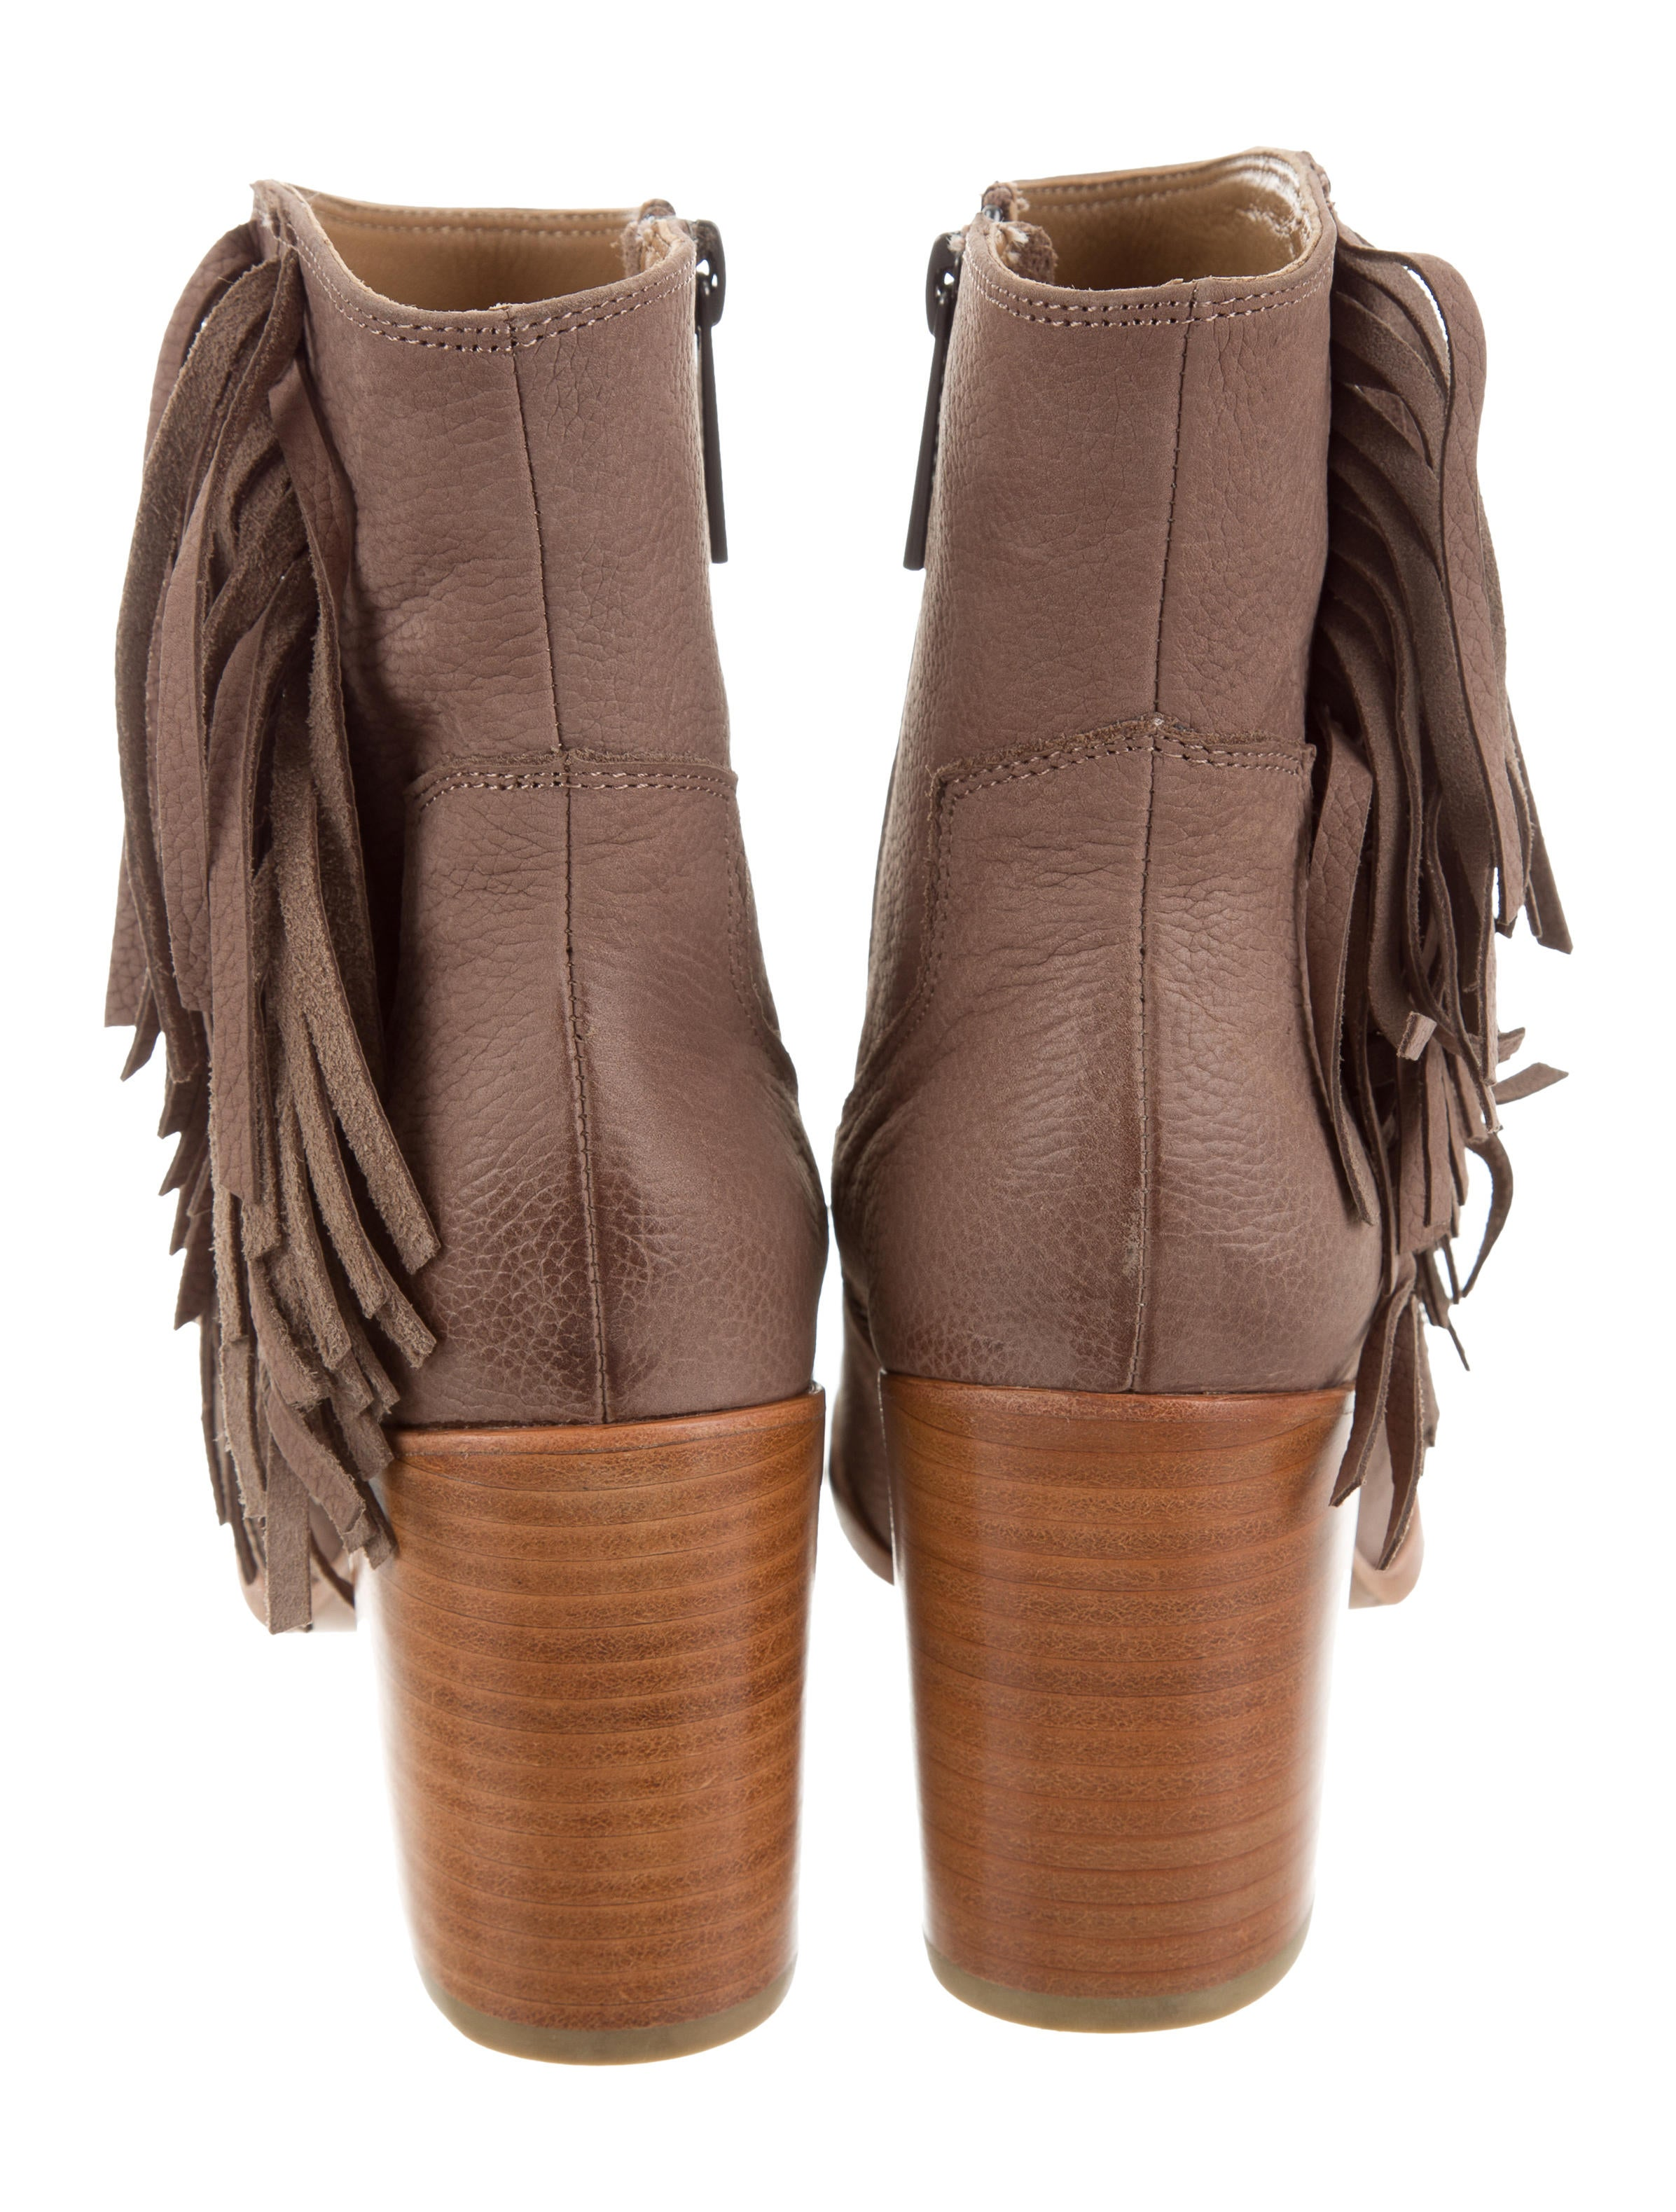 Liebeskind Nubuck Fringe Boots w/ Tags cheap sale top quality sale very cheap idOSp34kXw